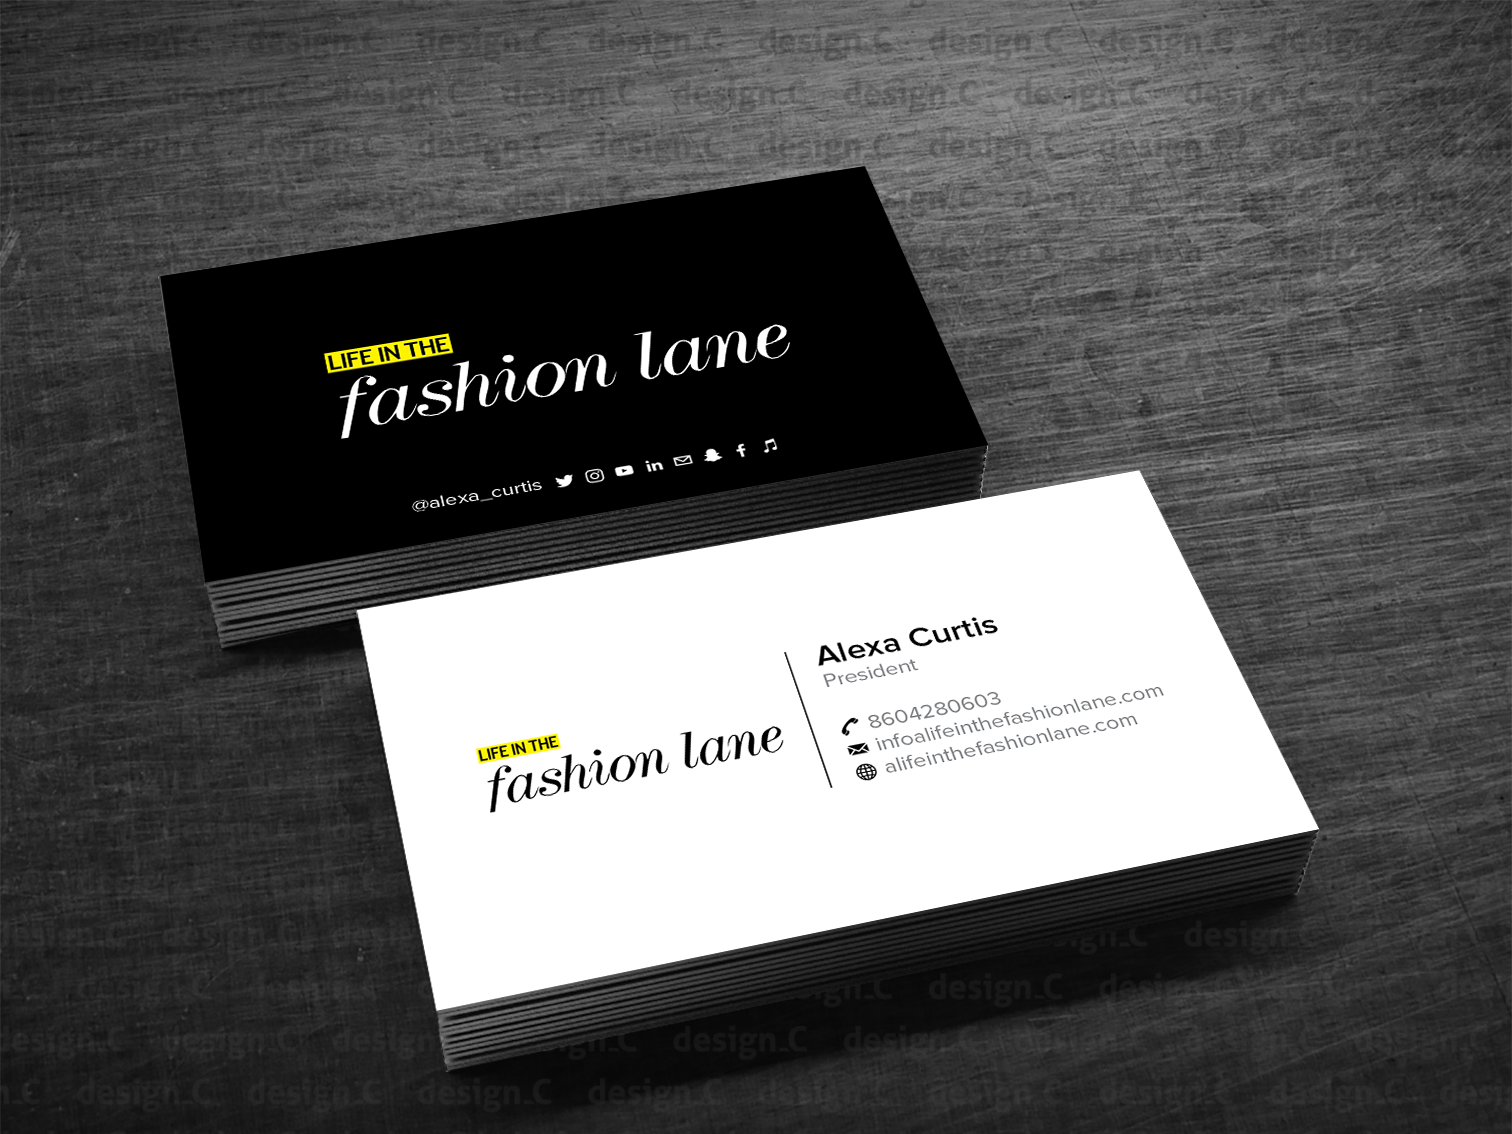 the best business card fonts to make you stand out 99designsa life in the fashion lane business card